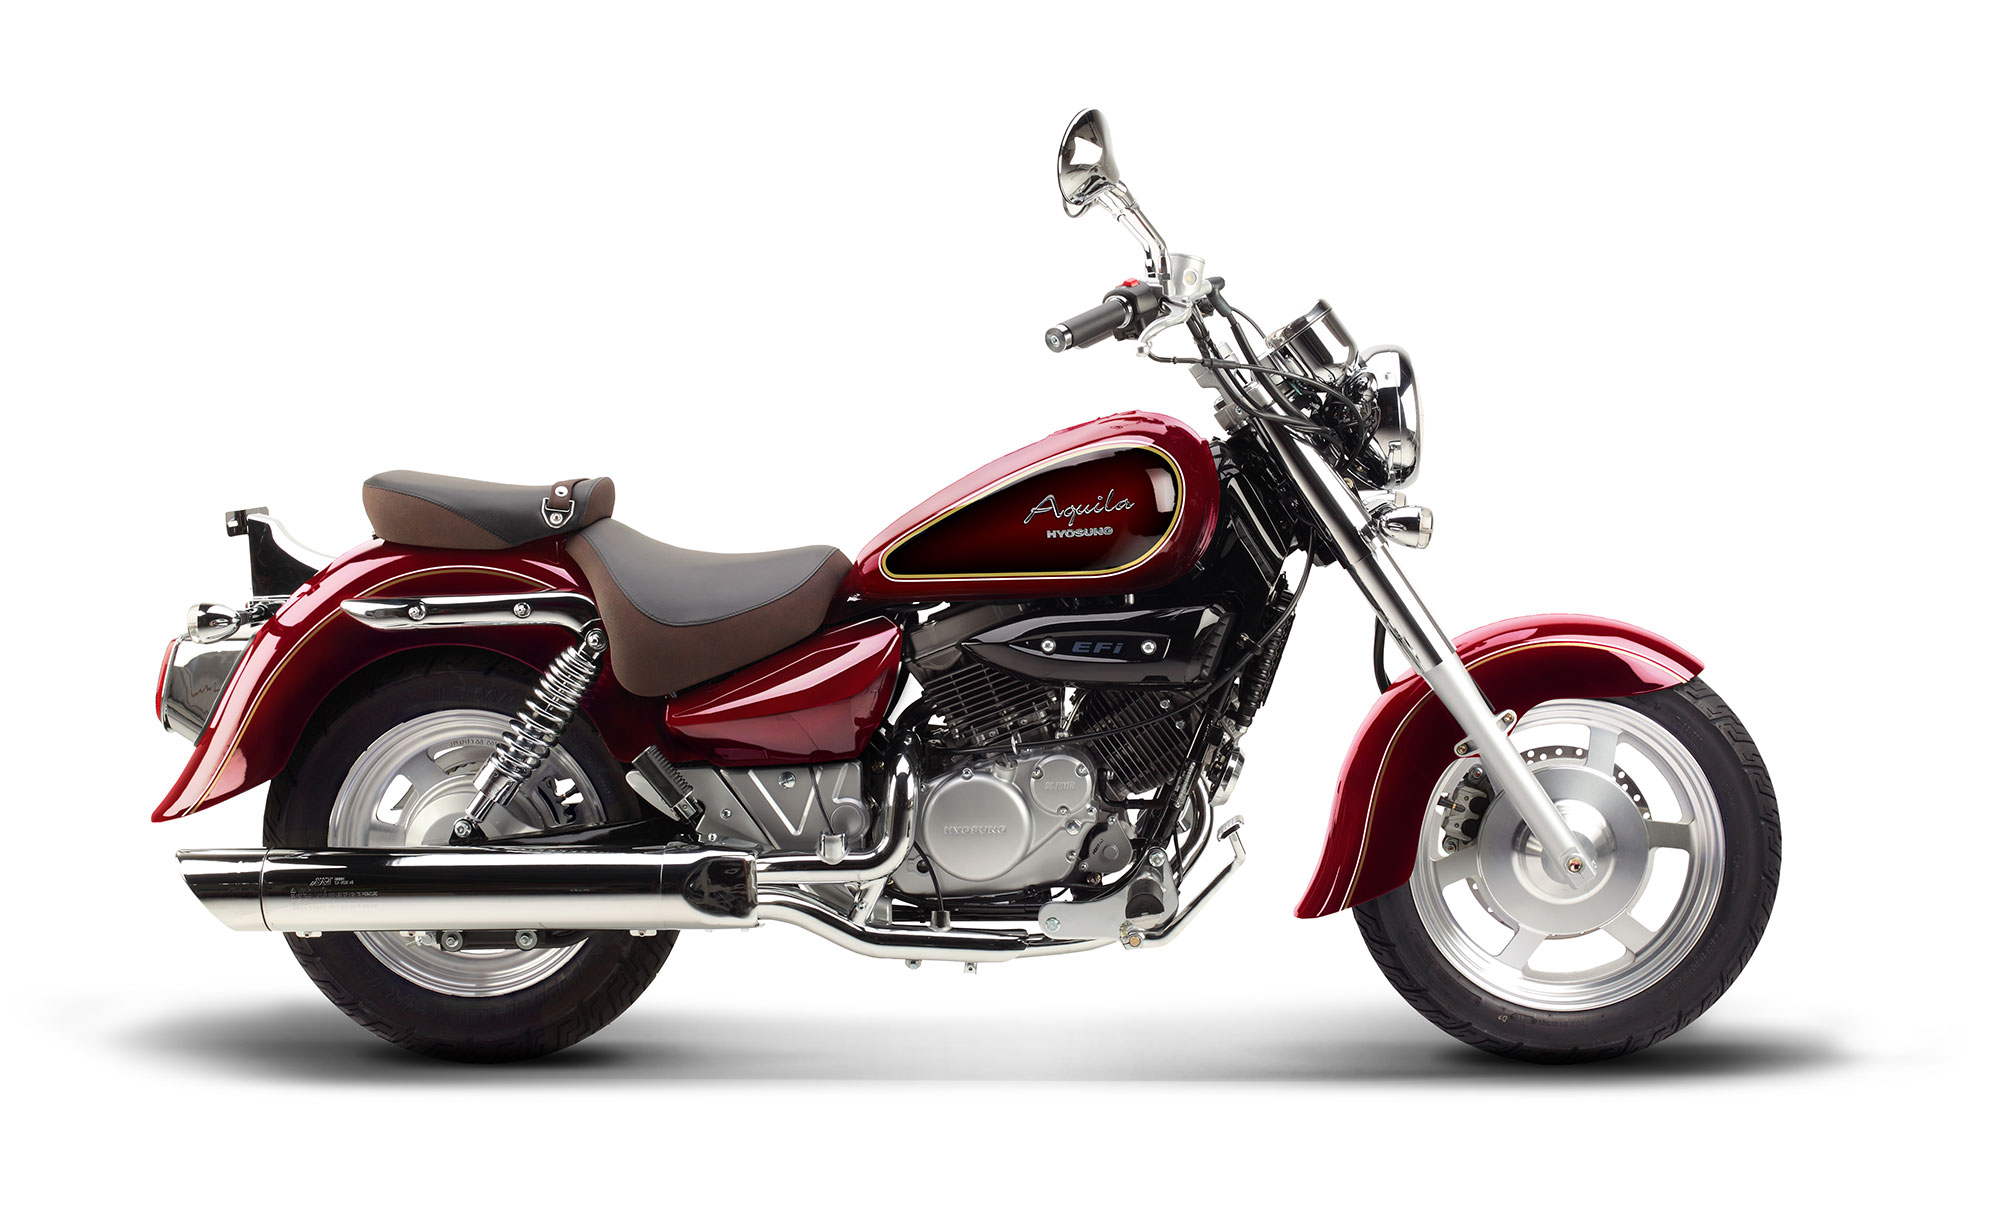 Motorcycle Review: Aquila GV250   Forbes India